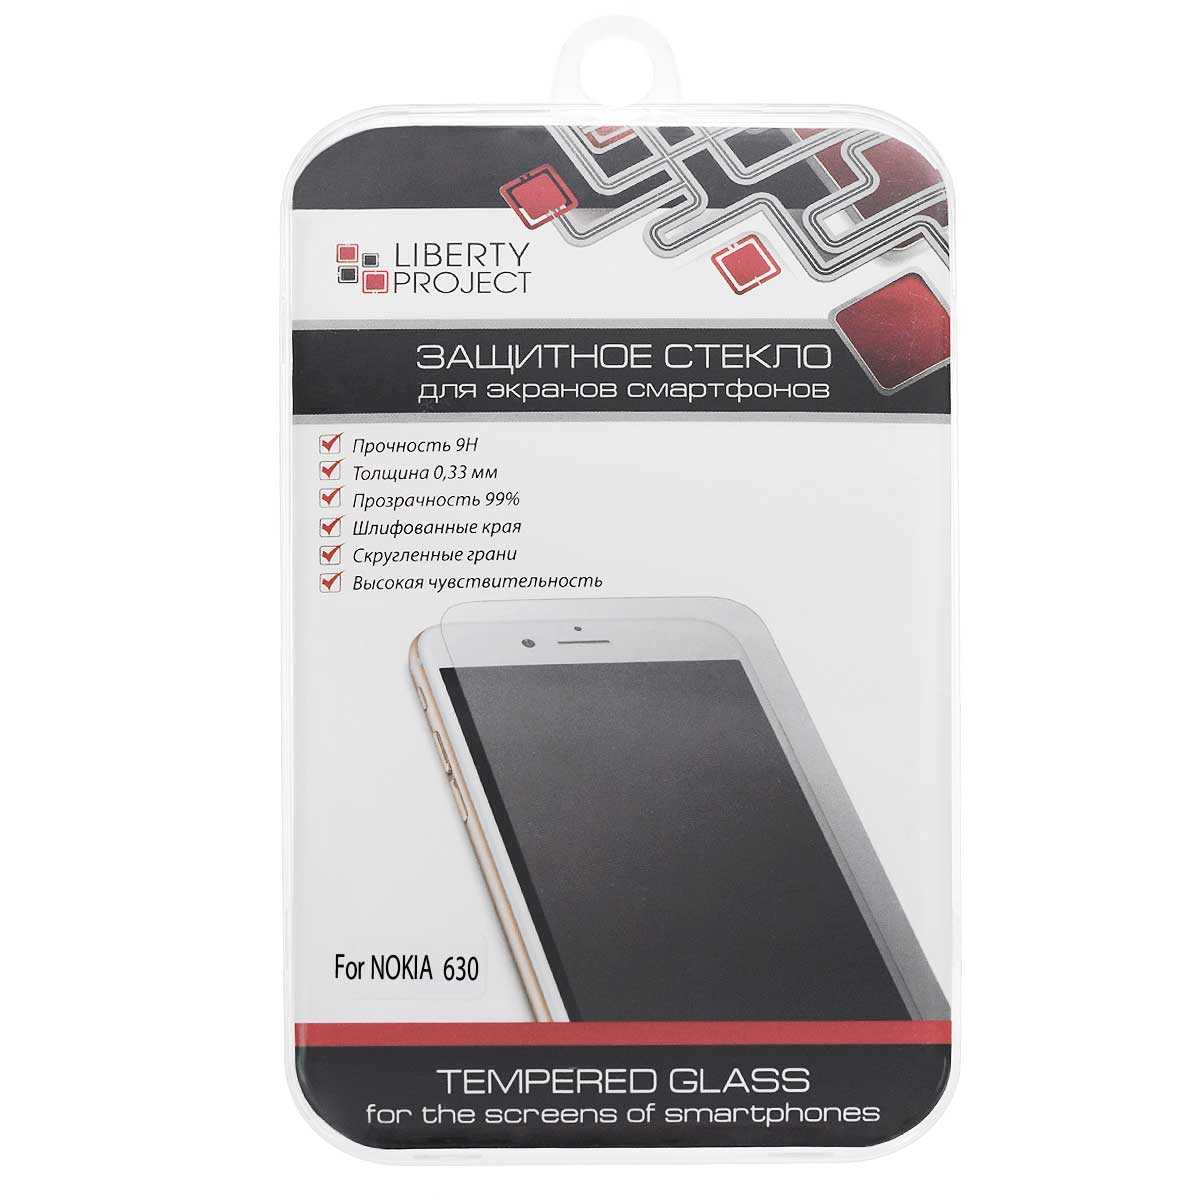 Liberty Project Tempered Glass защитное стекло для Nokia 630, Clear (0,33 мм) liberty project tempered glass защитное стекло для iphone 6 plus clear 0 33 мм